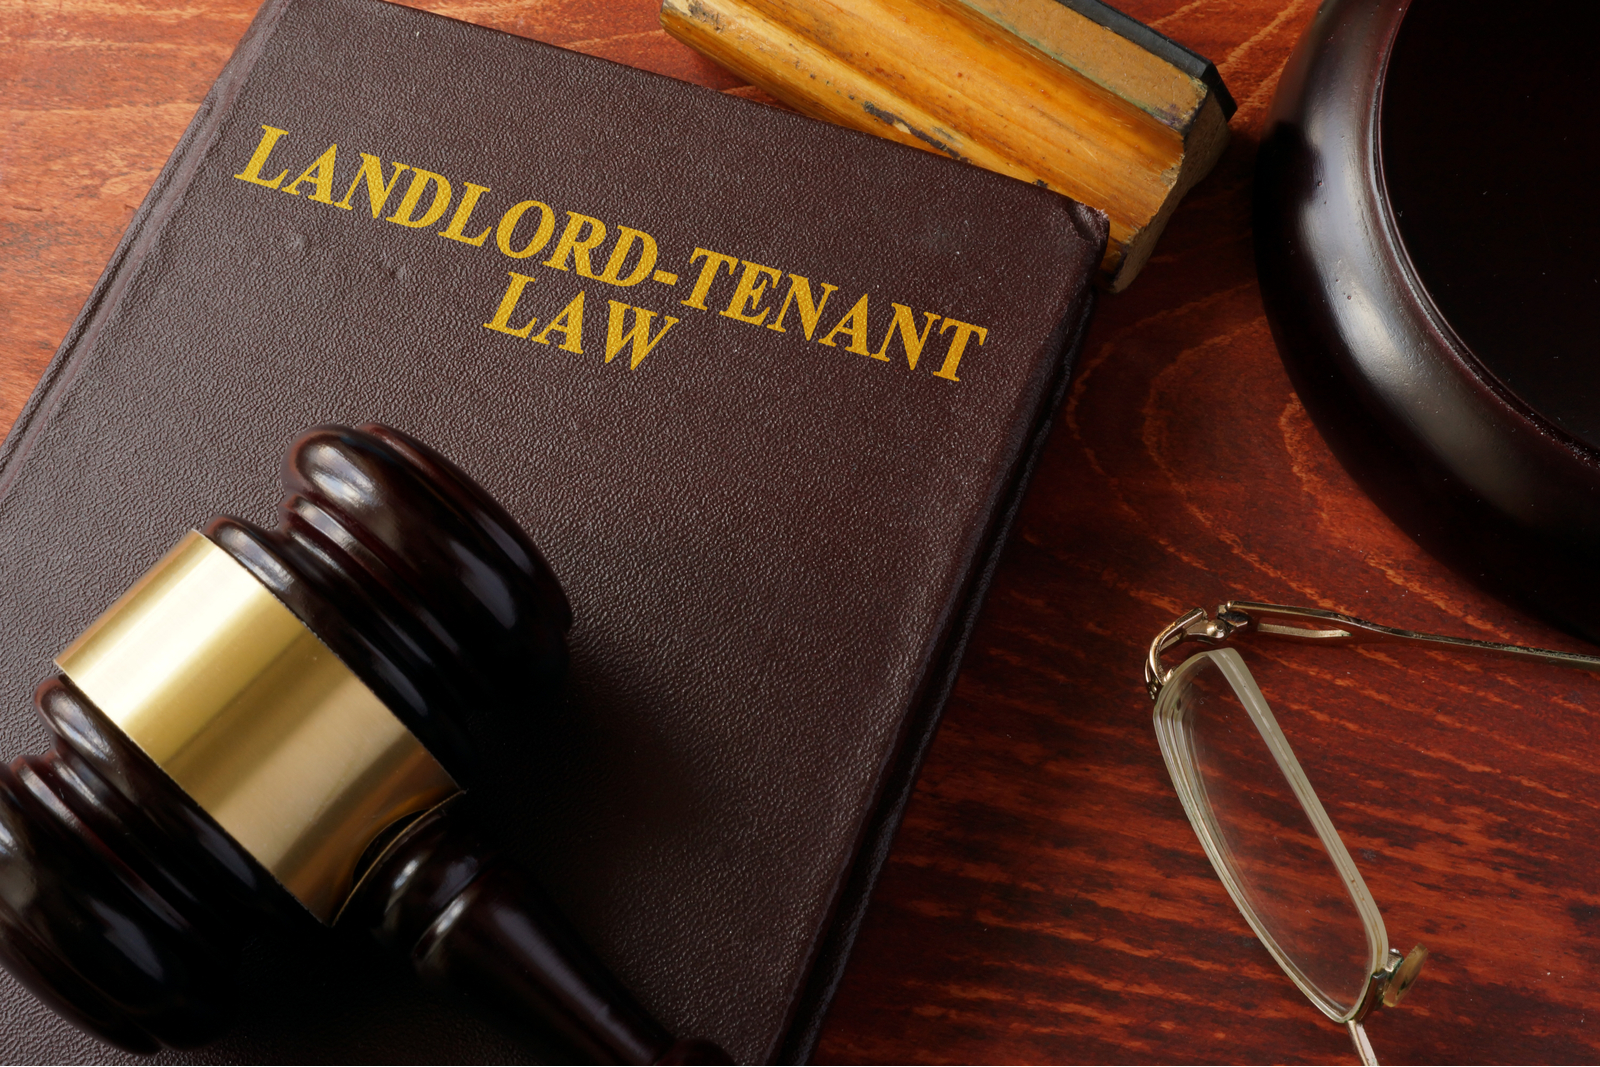 landlord-and-tenant-attorney-referral.jpg